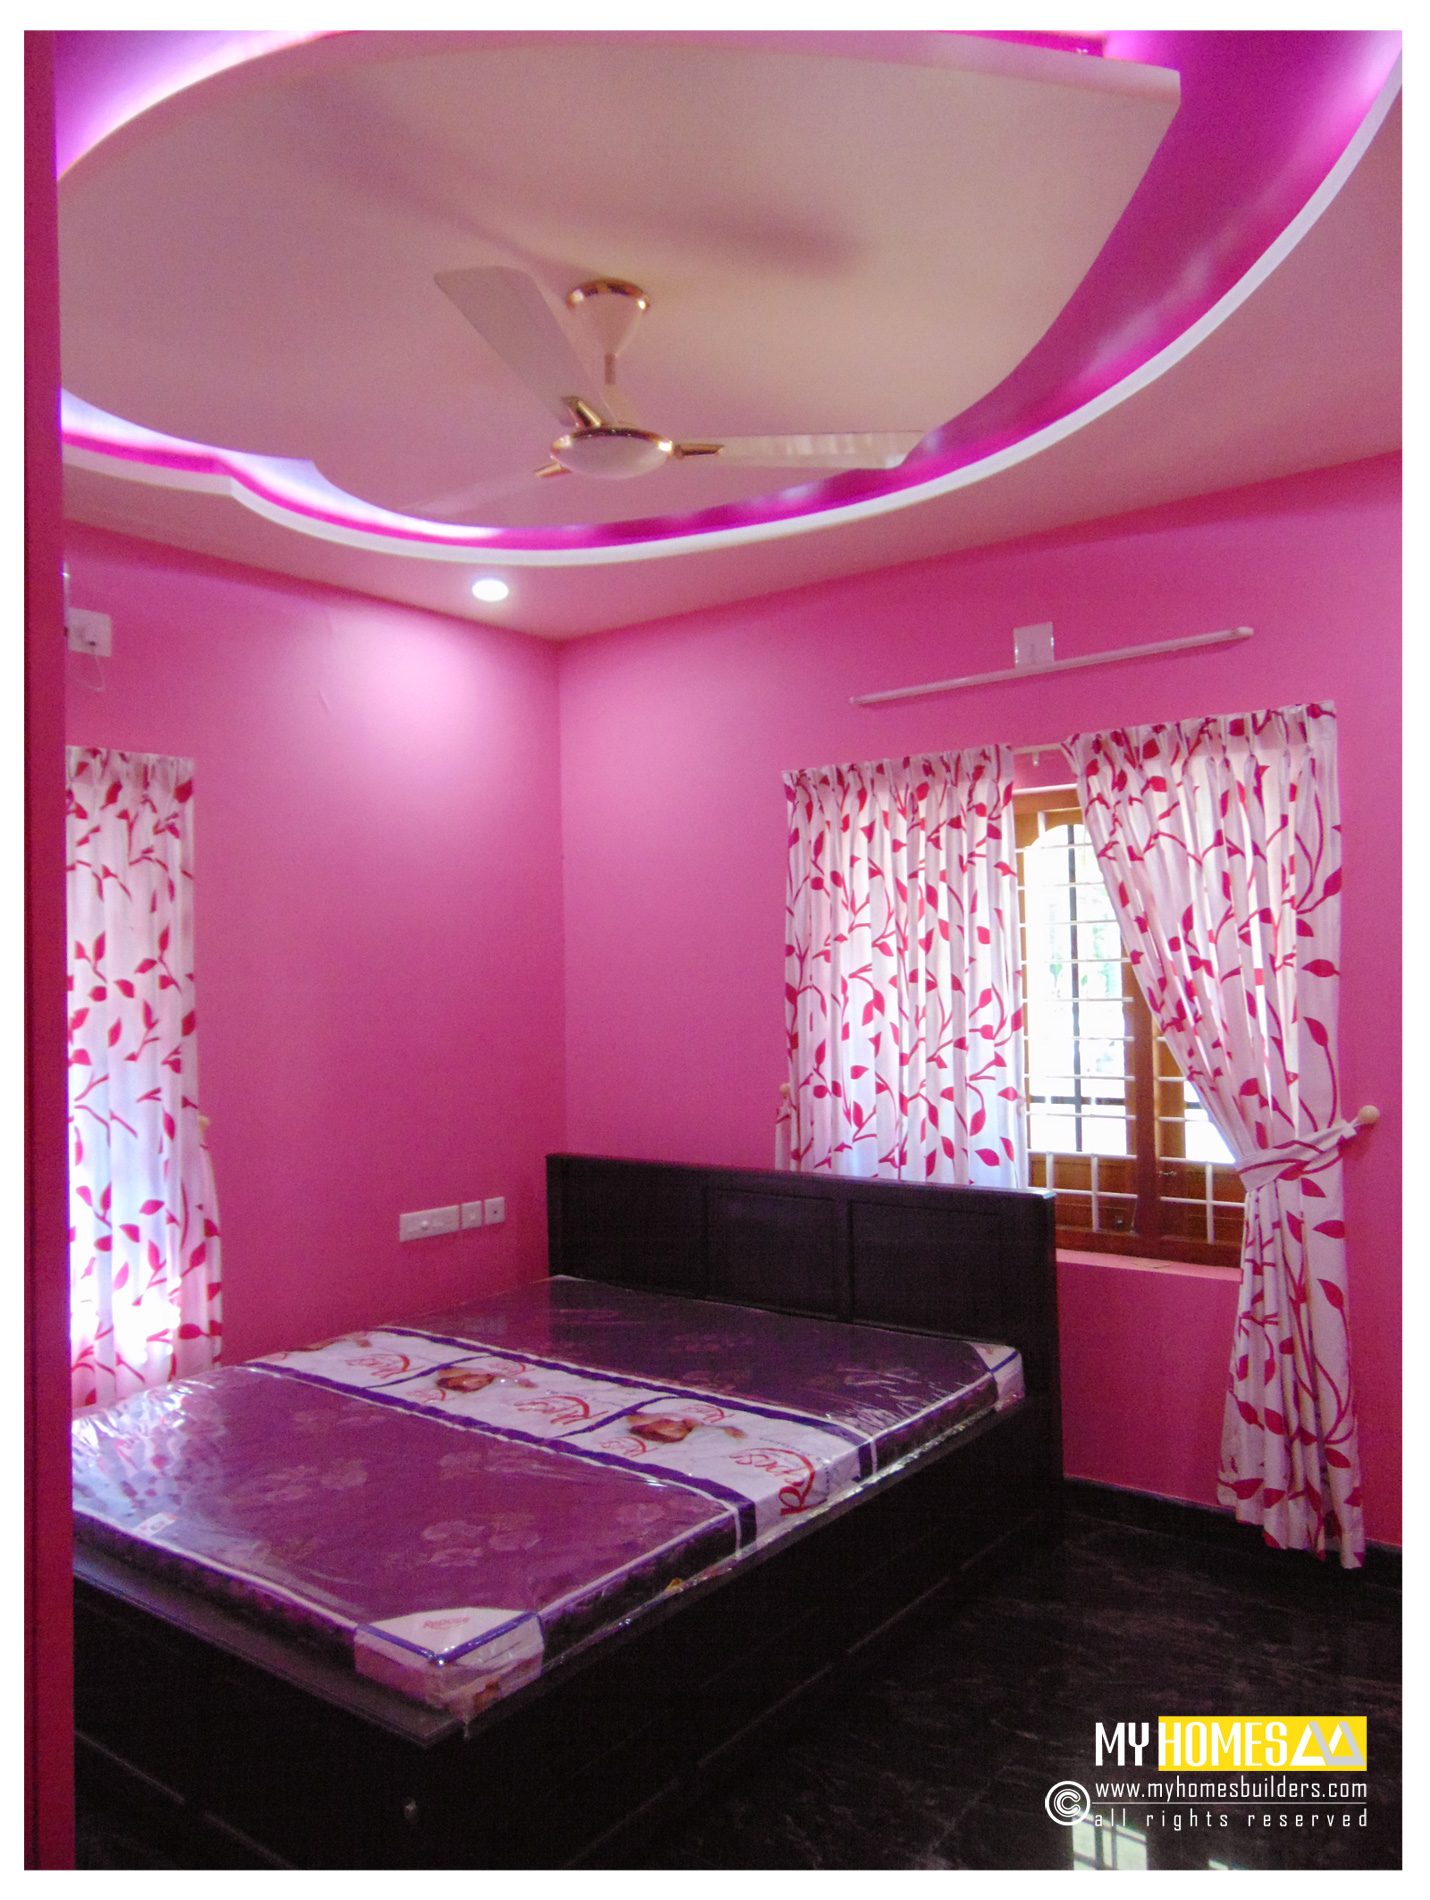 Simple style kerala bedroom designs ideas for home interior for Bedroom design styles